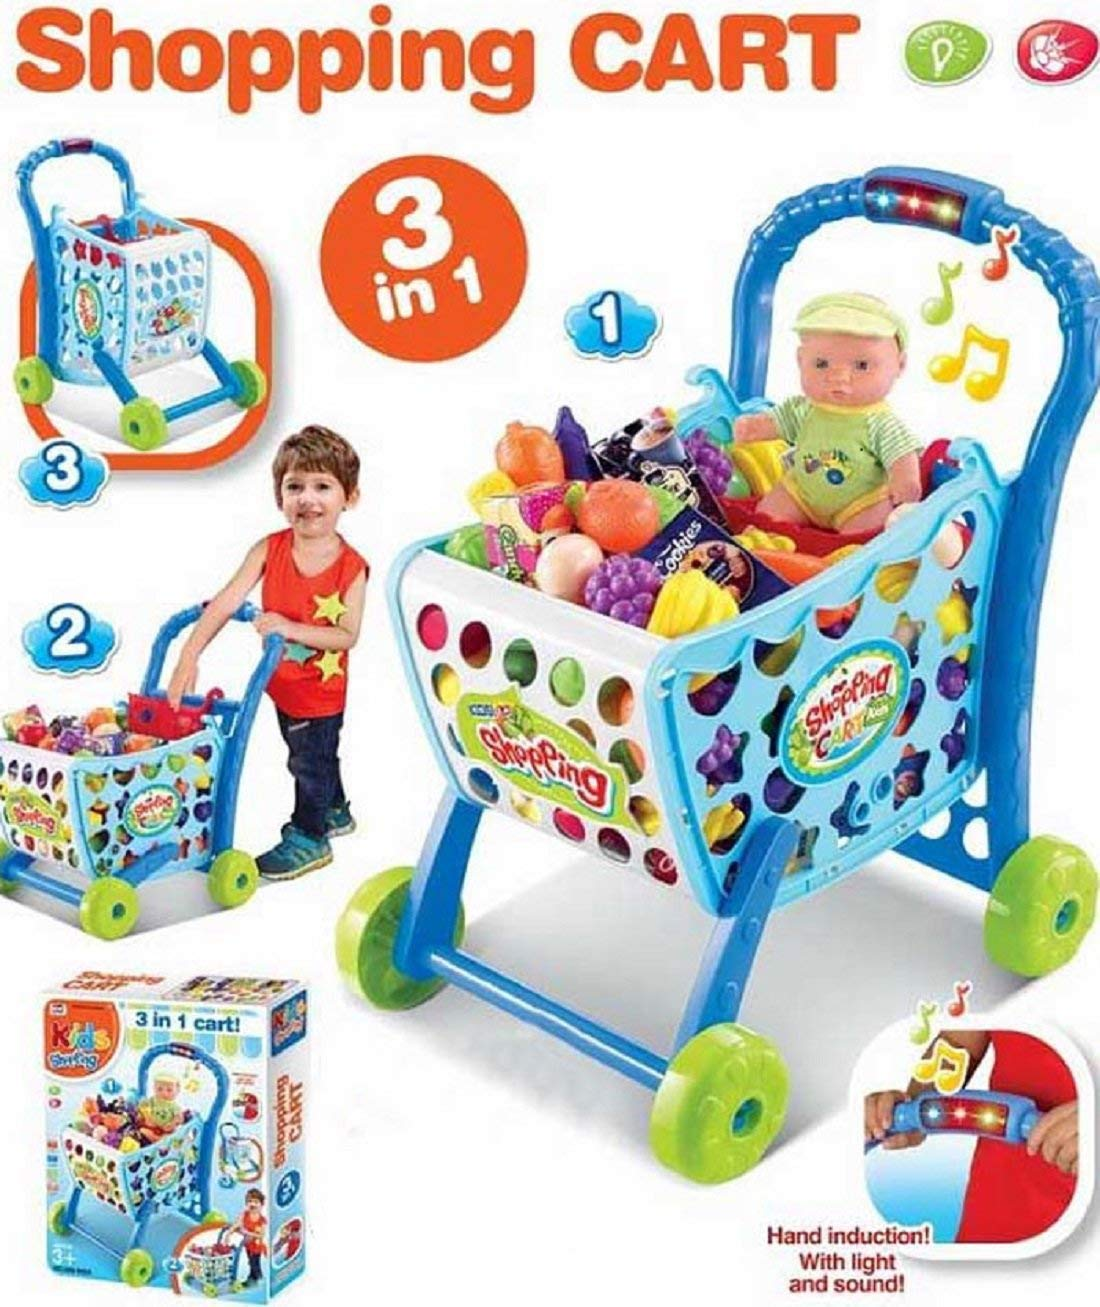 f0858b8ce07a3 Buy TALREJA ENTERPRISES Light and Music Supermarket Shopping Cart Pretend  Play Toy Trolley with Full Grocery Food for Kids (Blue) Online at Low  Prices in ...